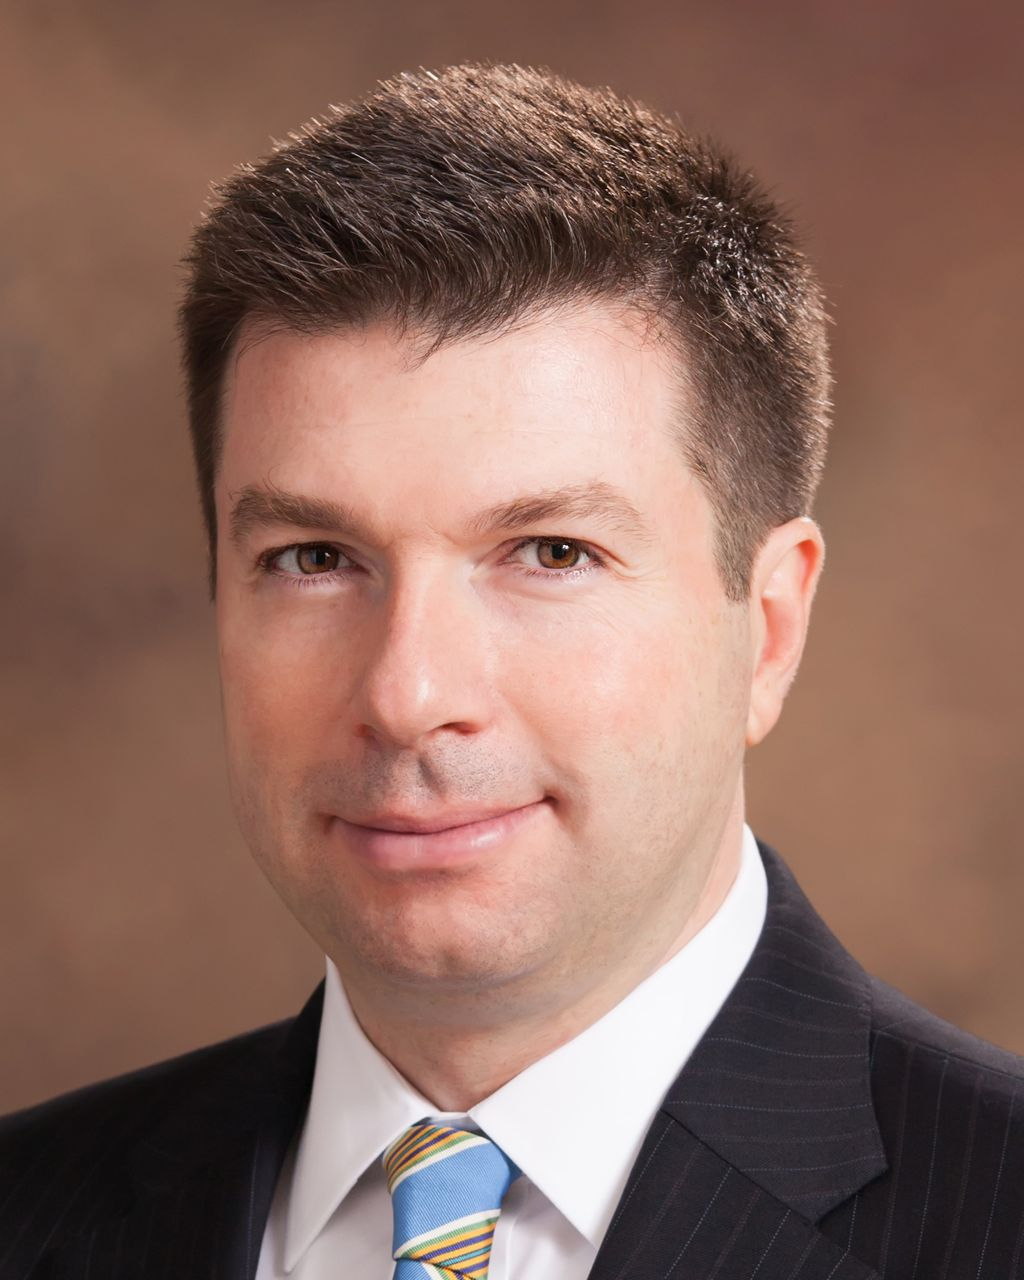 Patrick Cote, financial advisor Brookline MA